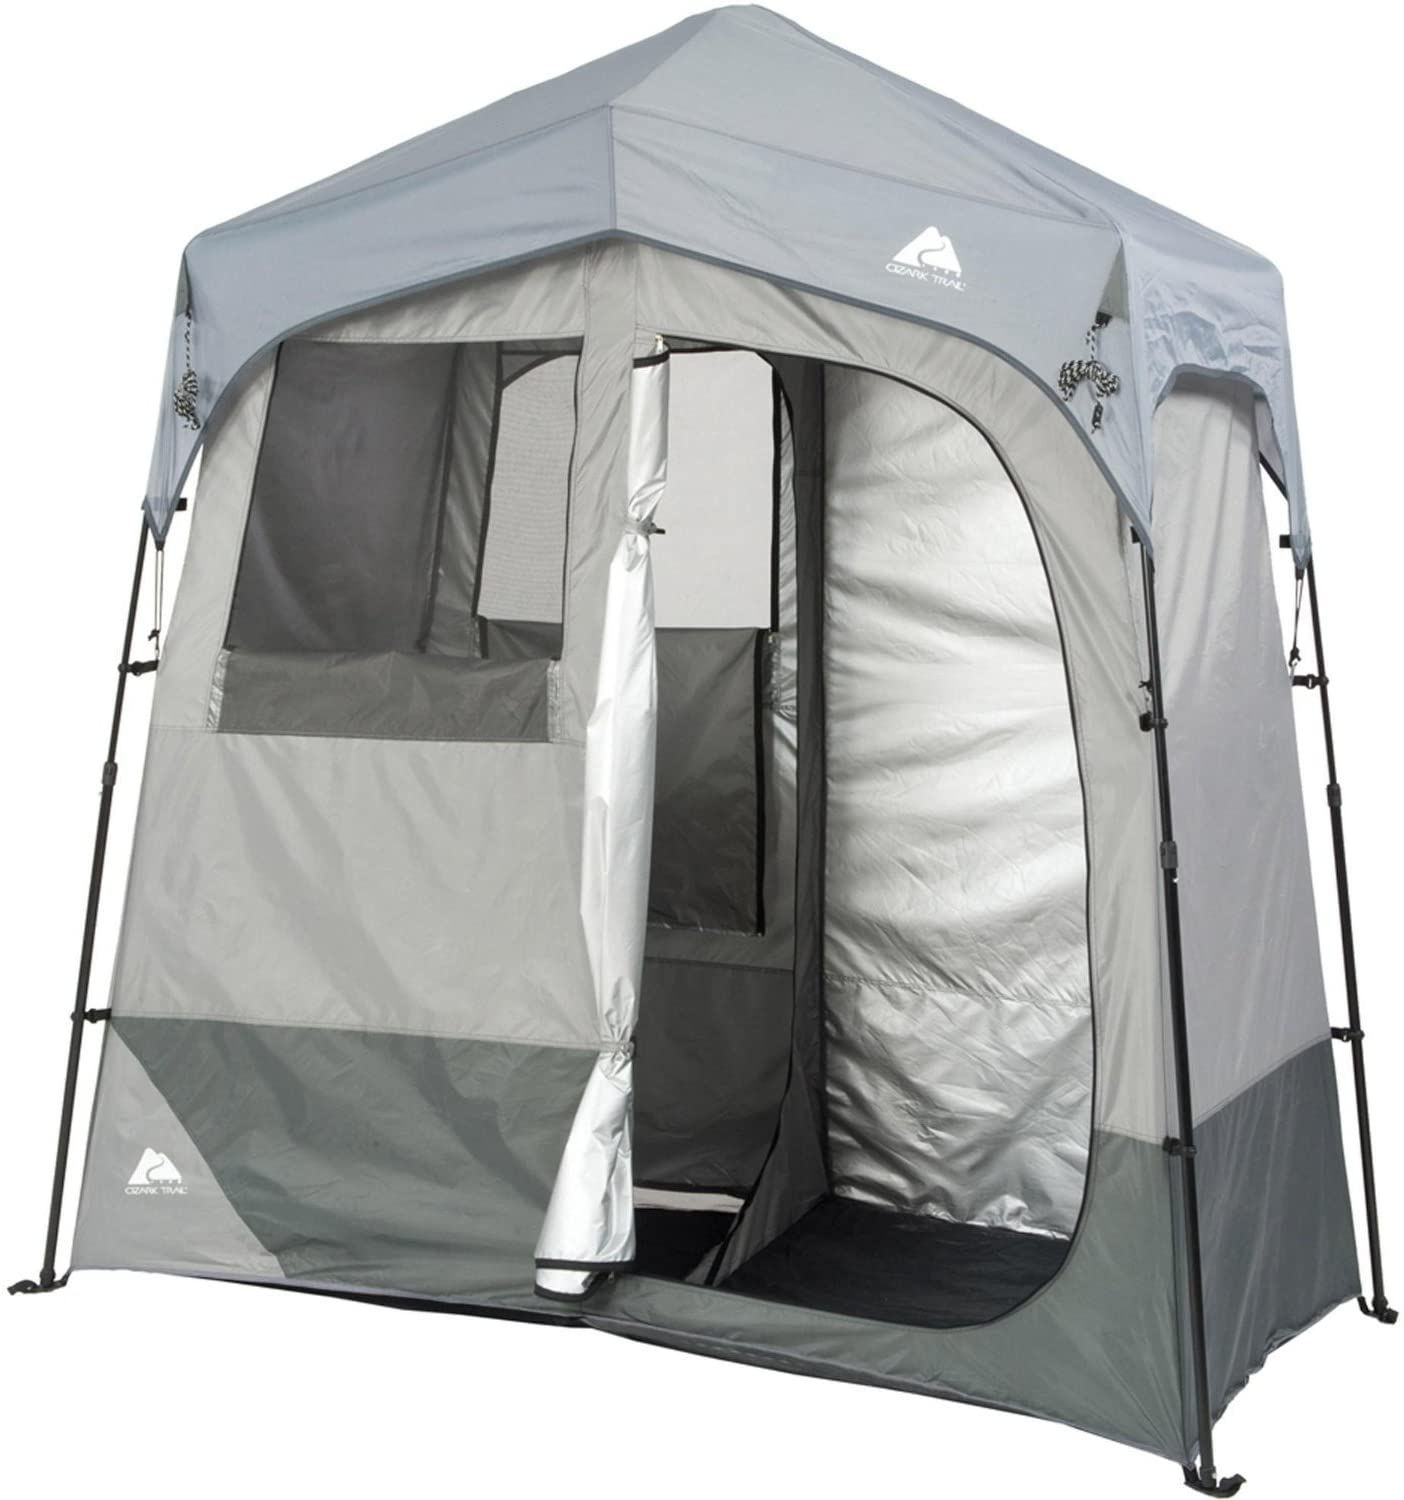 Best Ozark Trail Tents For The Money In 2020 Reviews 40